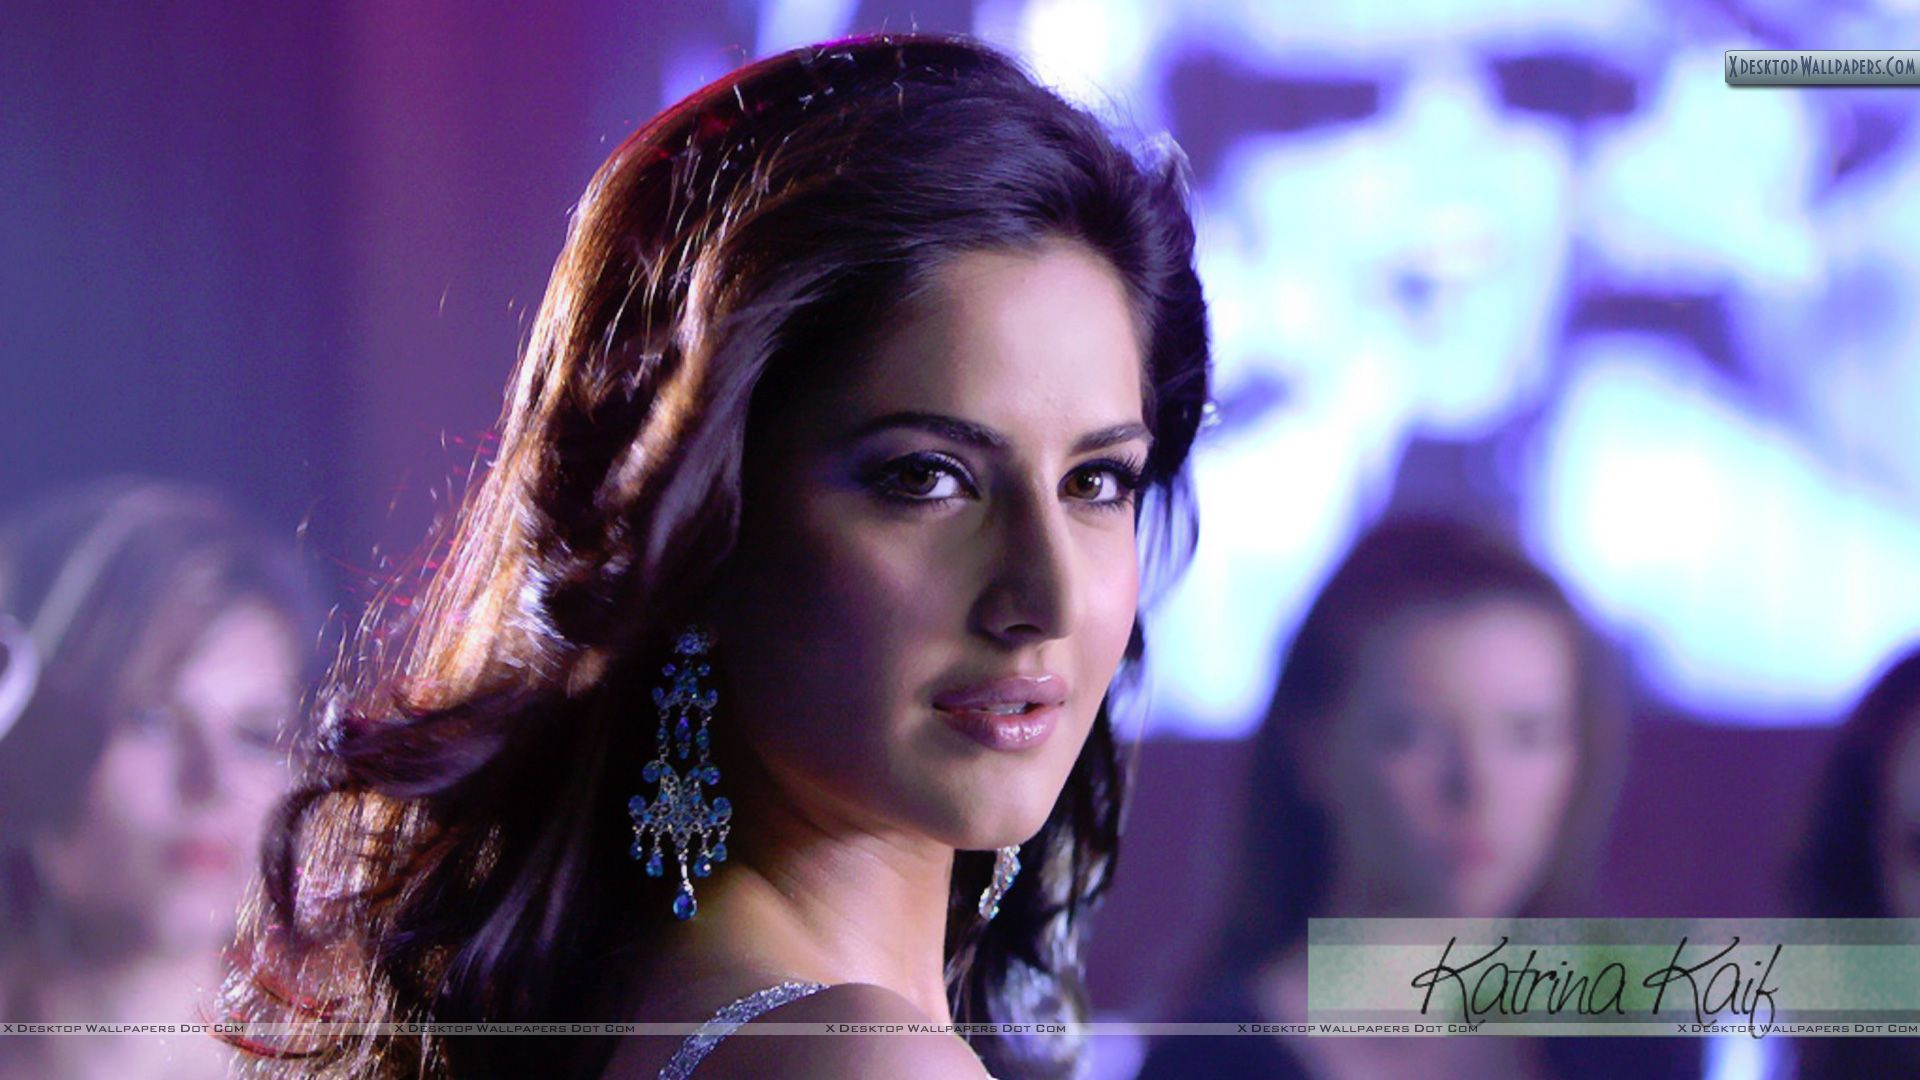 Cute Face Closeup Of Katrina Kaif In Disco Wallpaper